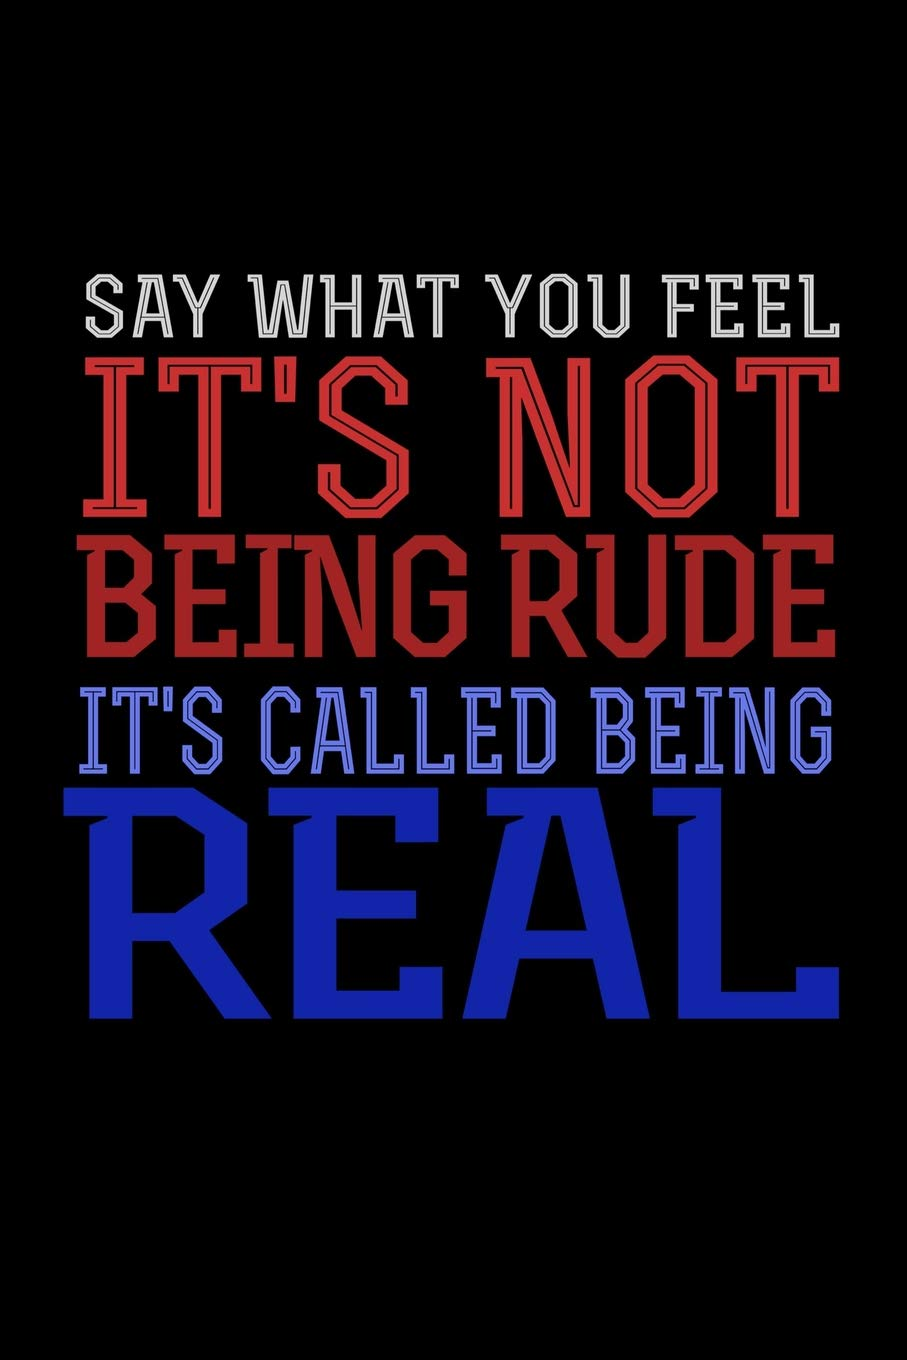 Funny Rude Friendship Quotes Daily Quotes